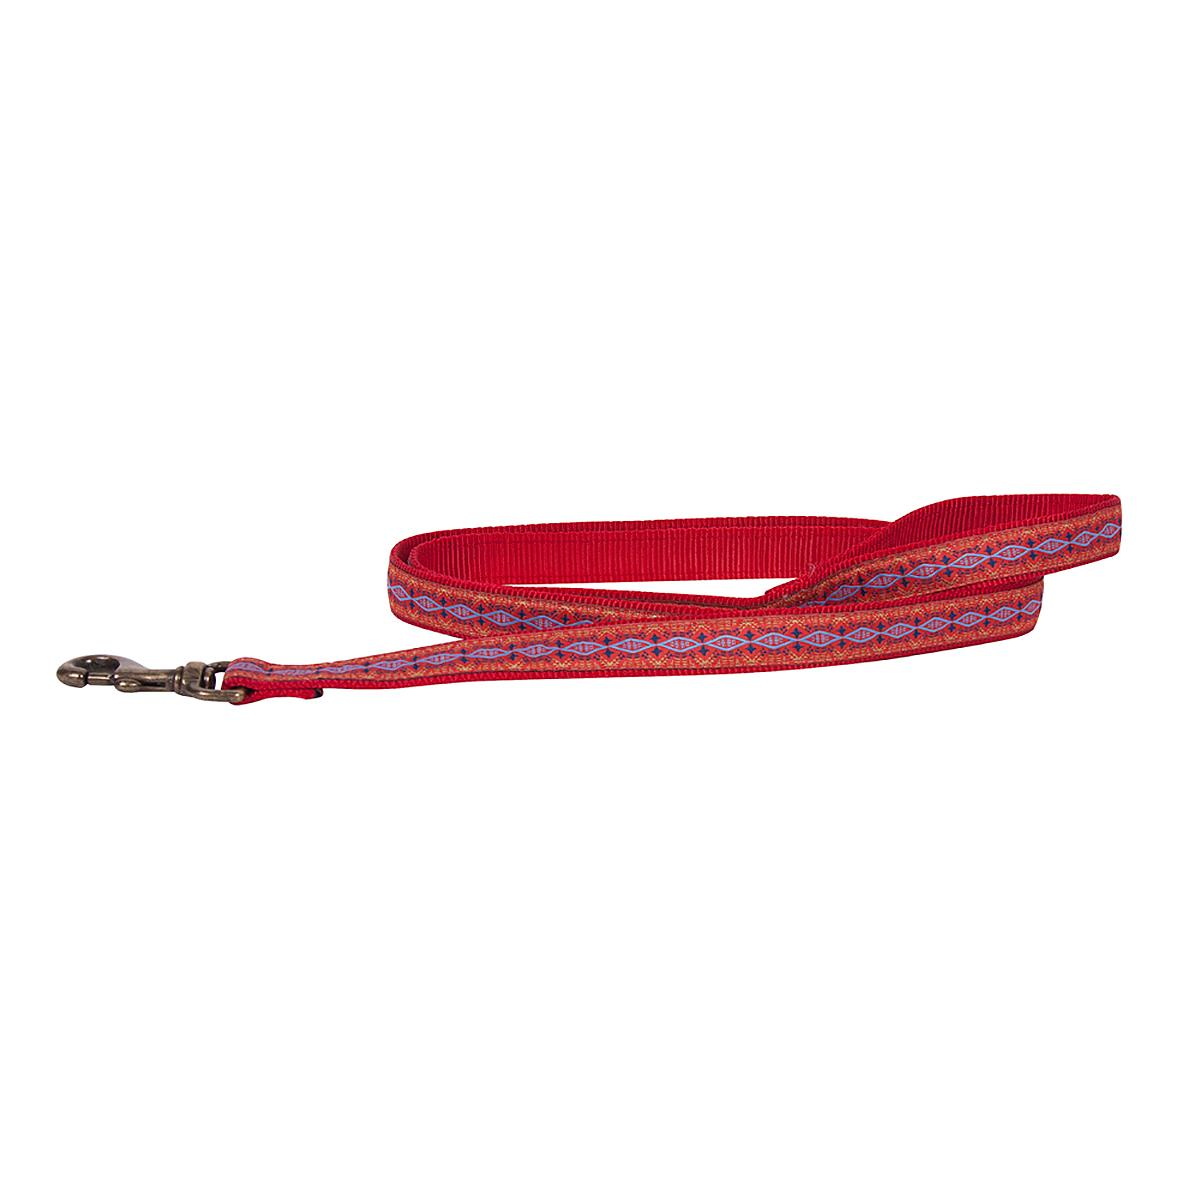 Pendleton Pet Diamond River Dog Leash - Scarlet